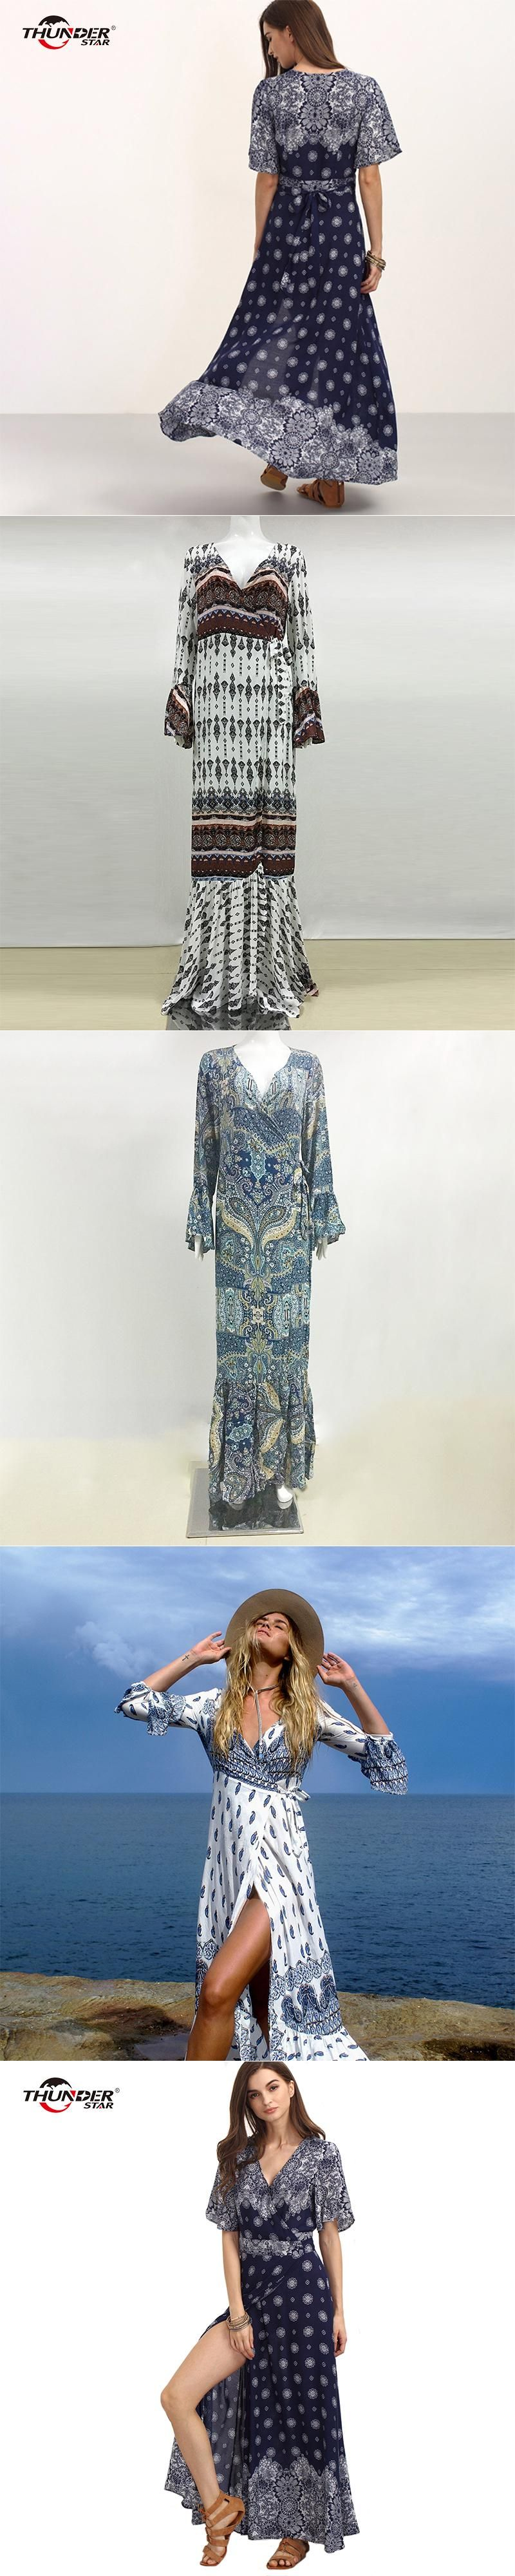 5887d202c01 2017 Boho floral print chiffon split long dress Women beach summer v neck  kimono sexy dress Elegant sash wrap maxi dresses LX5